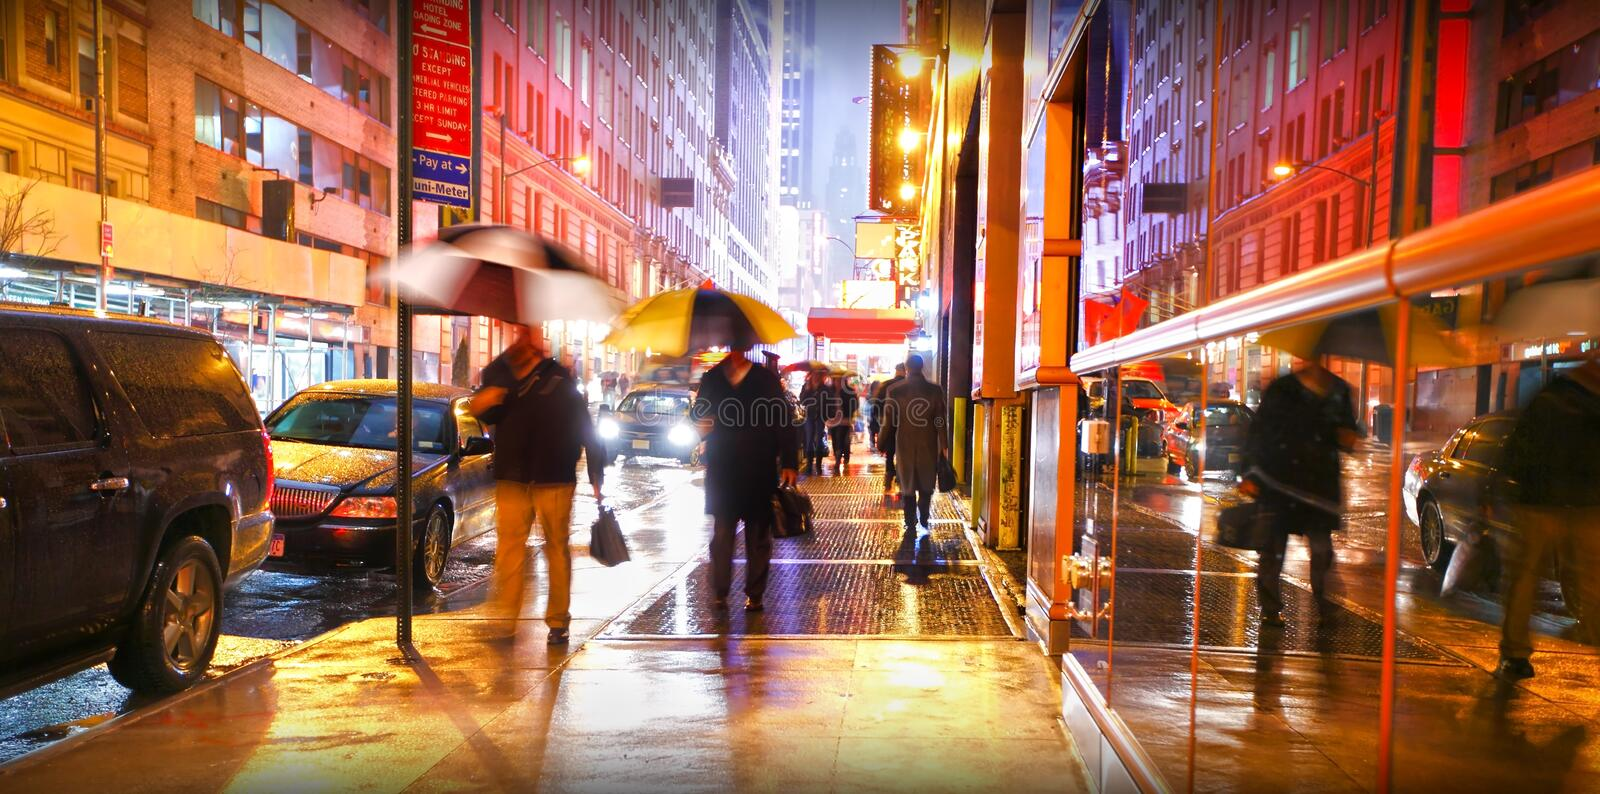 New York people commuting in rain stock photography